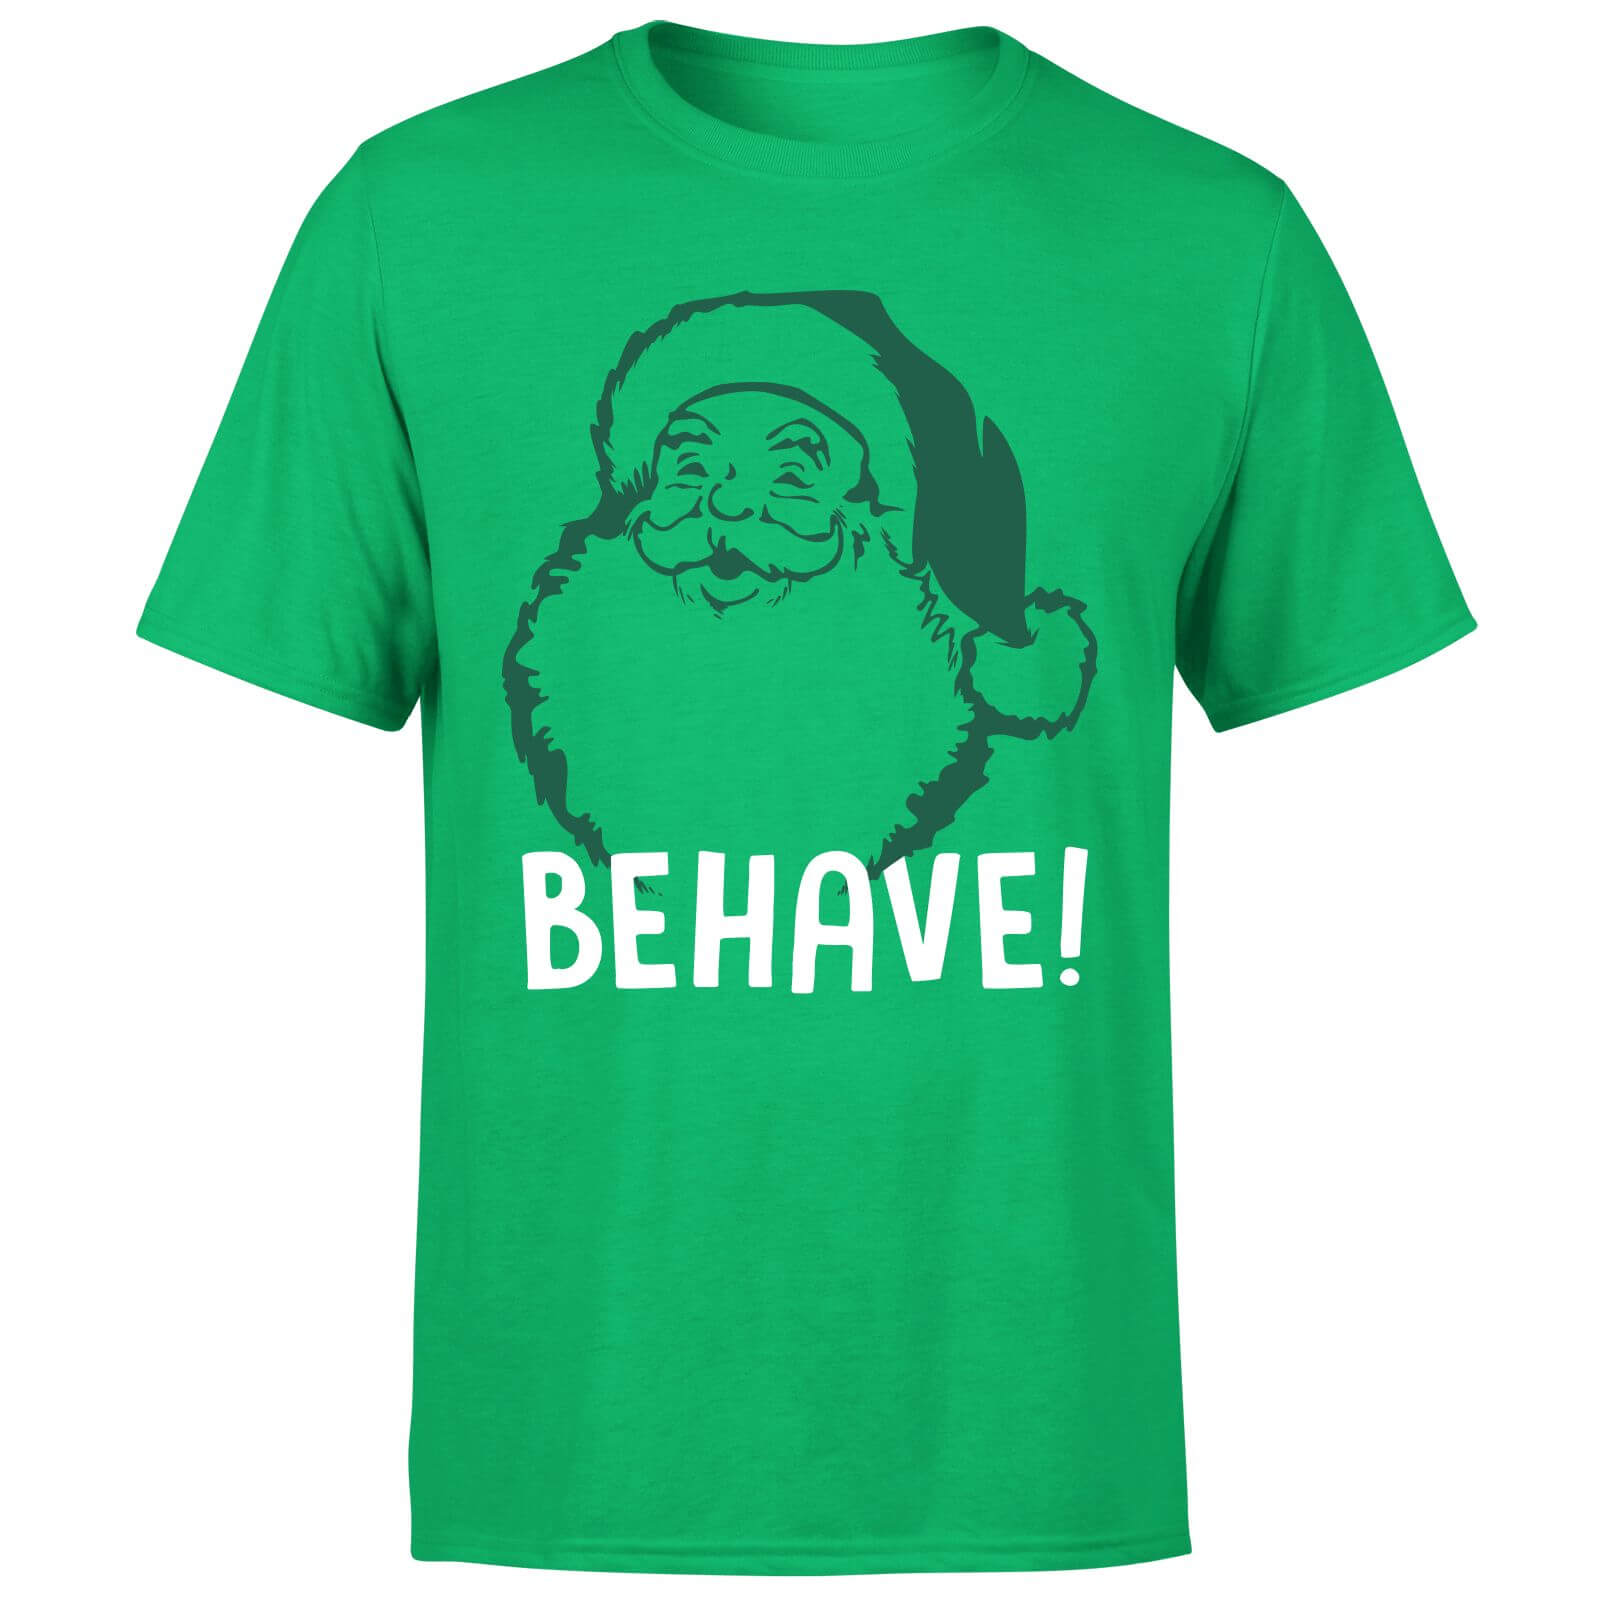 Behave! T-Shirt - Kelly Green